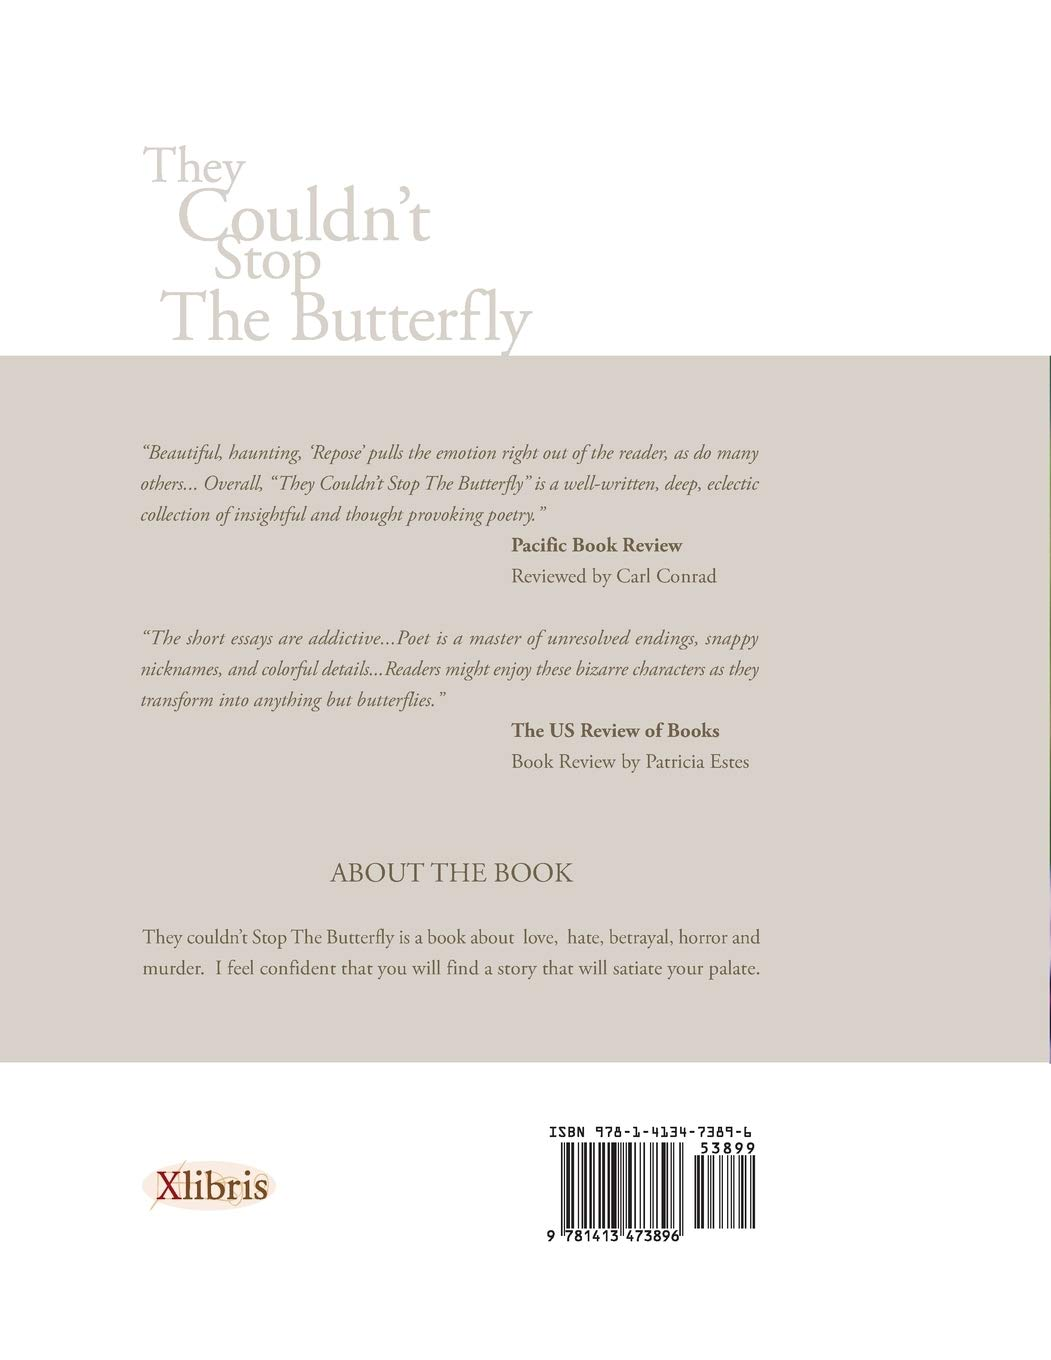 They Couldnt Stop the Butterfly backcover